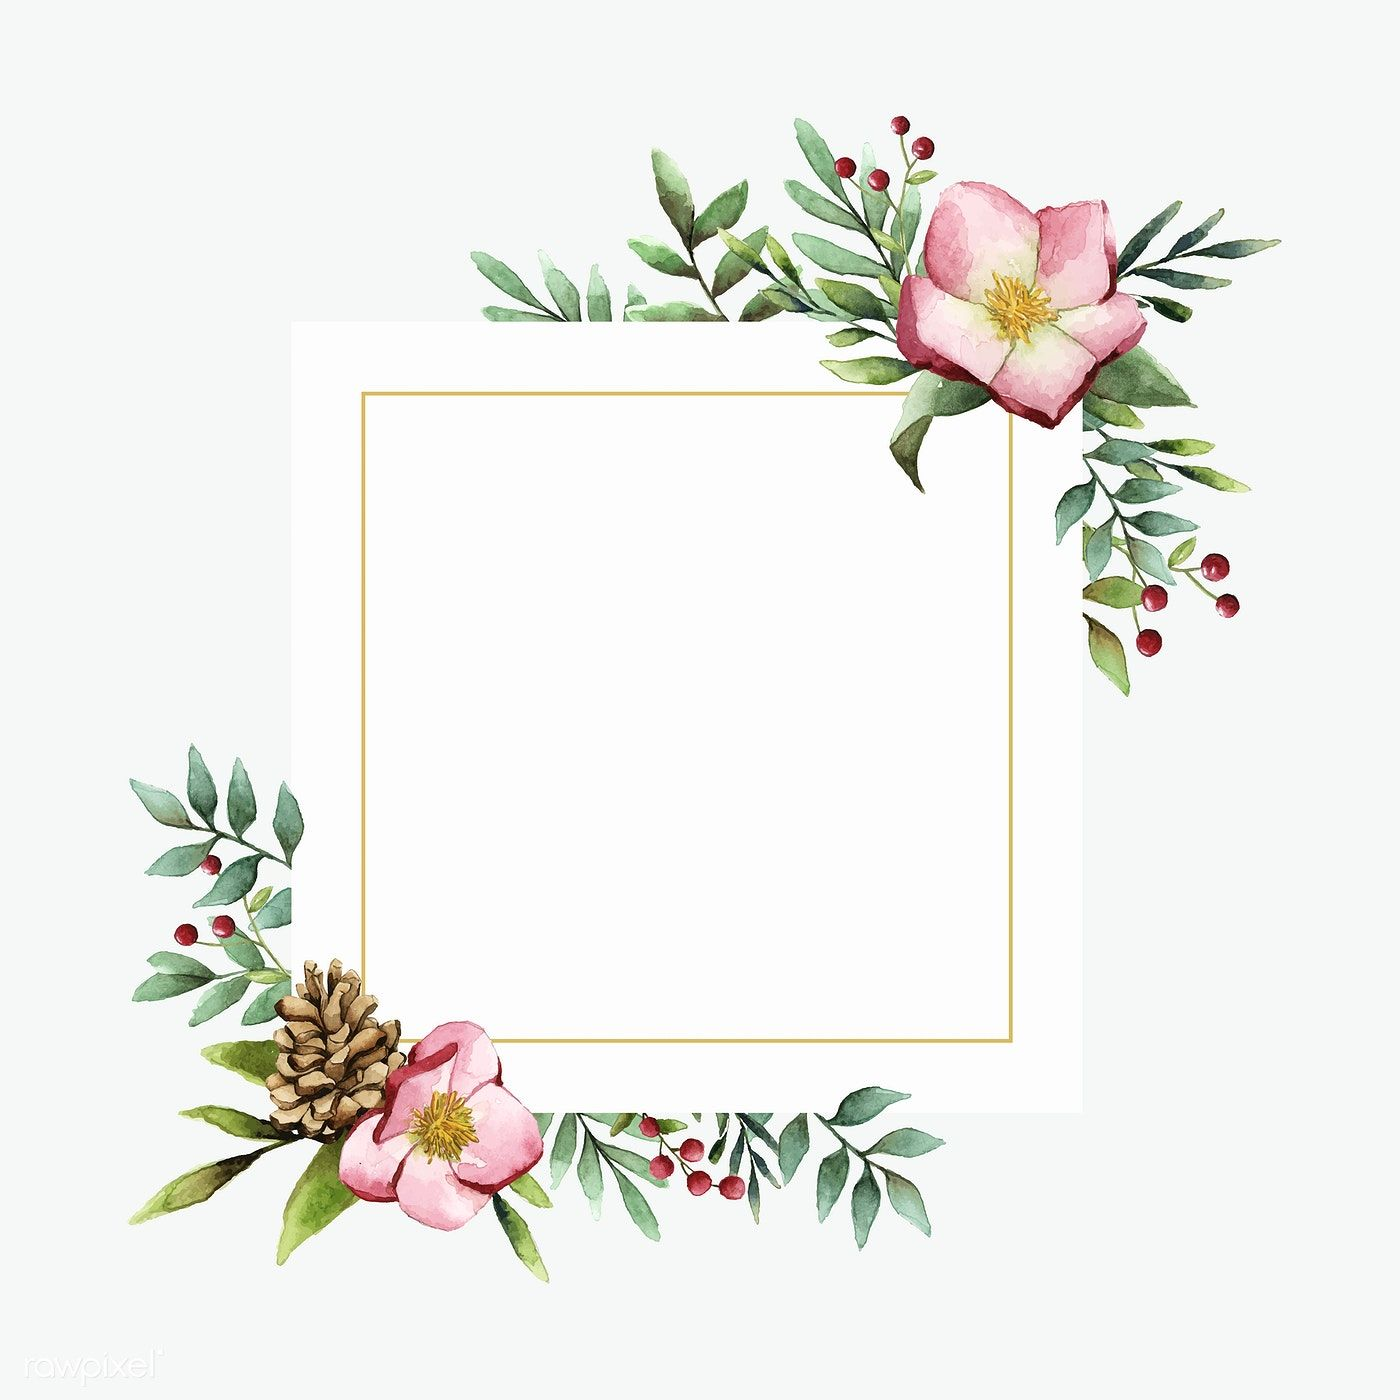 Hellebore Flower Frame Painted By Watercolor Vector Free Image